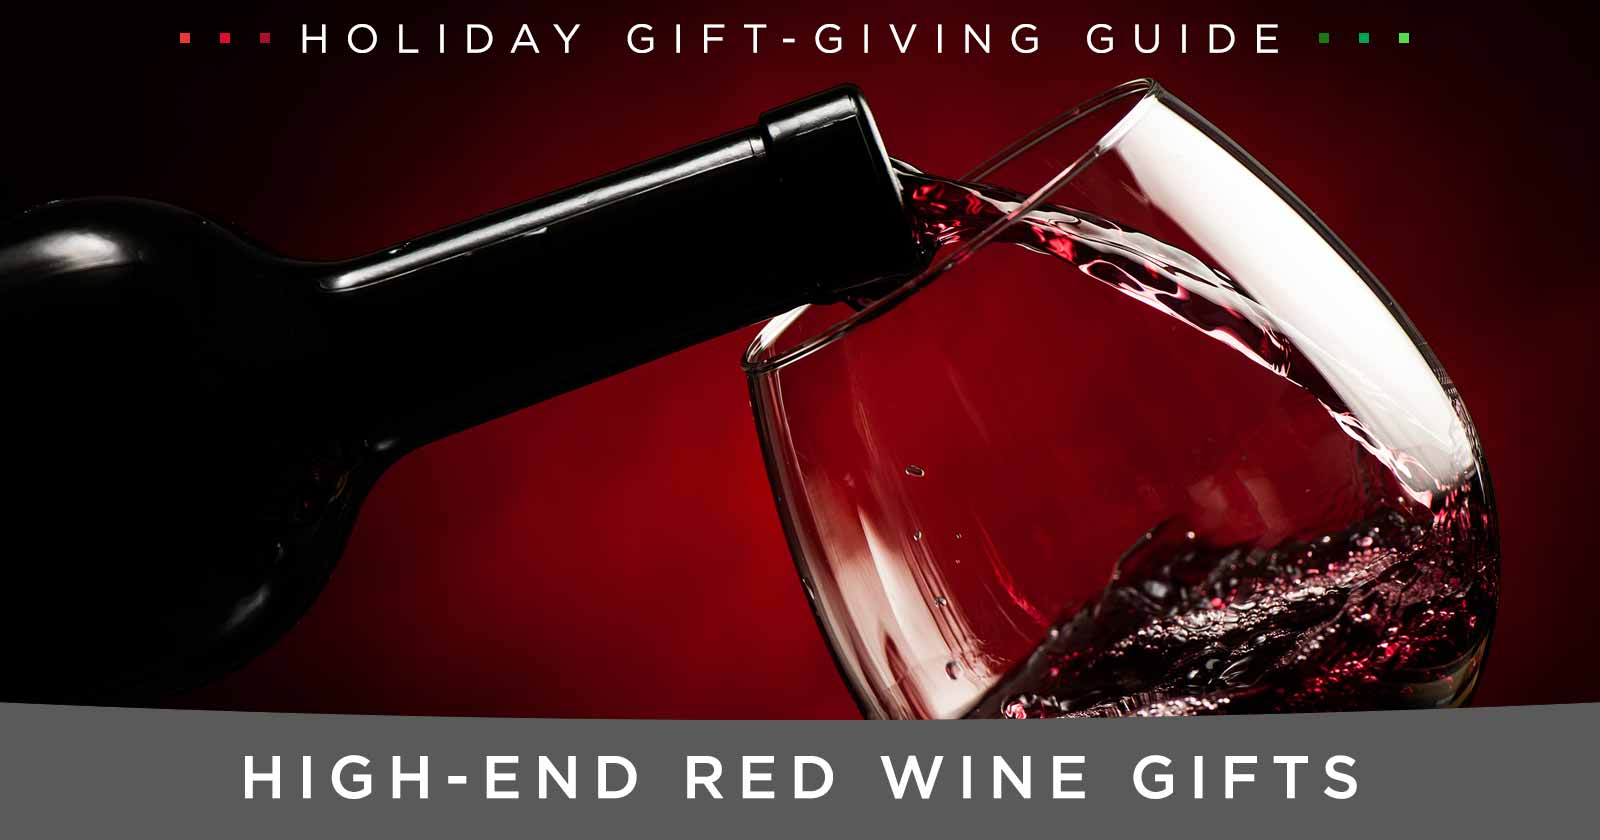 High-End Red Wine Gifts